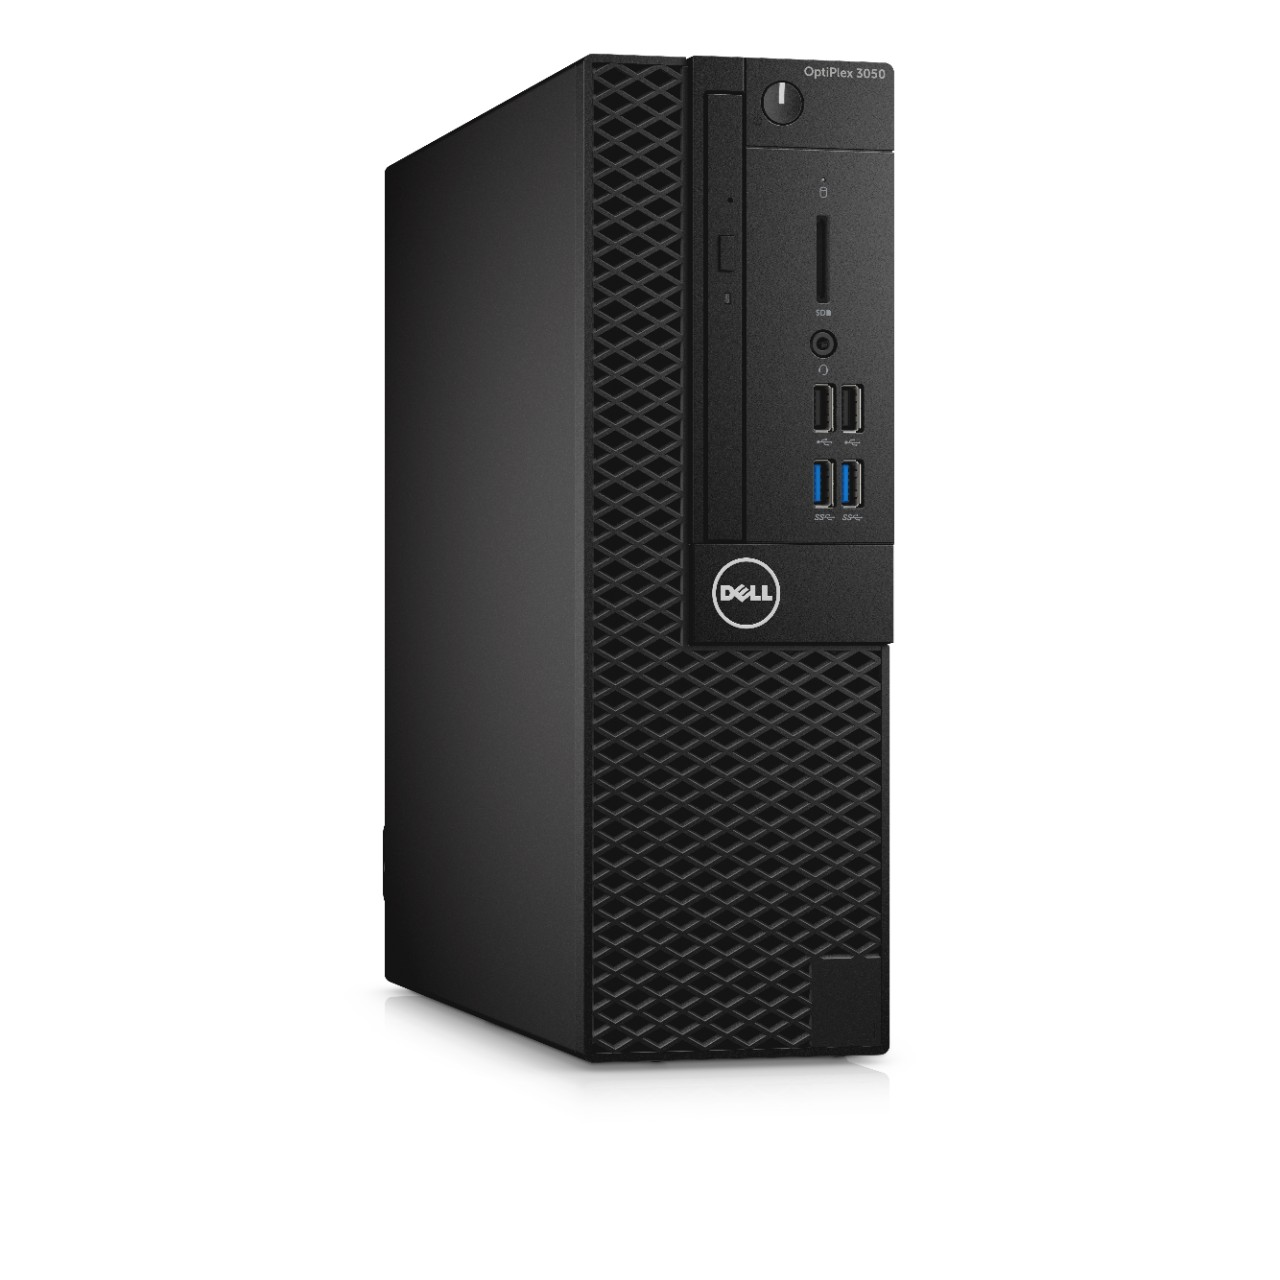 Dell PC Optiplex 3050 SF i5-7500/4G/500GB/DP/HDMI/DVD RW/W10P/3RNBD/Černý